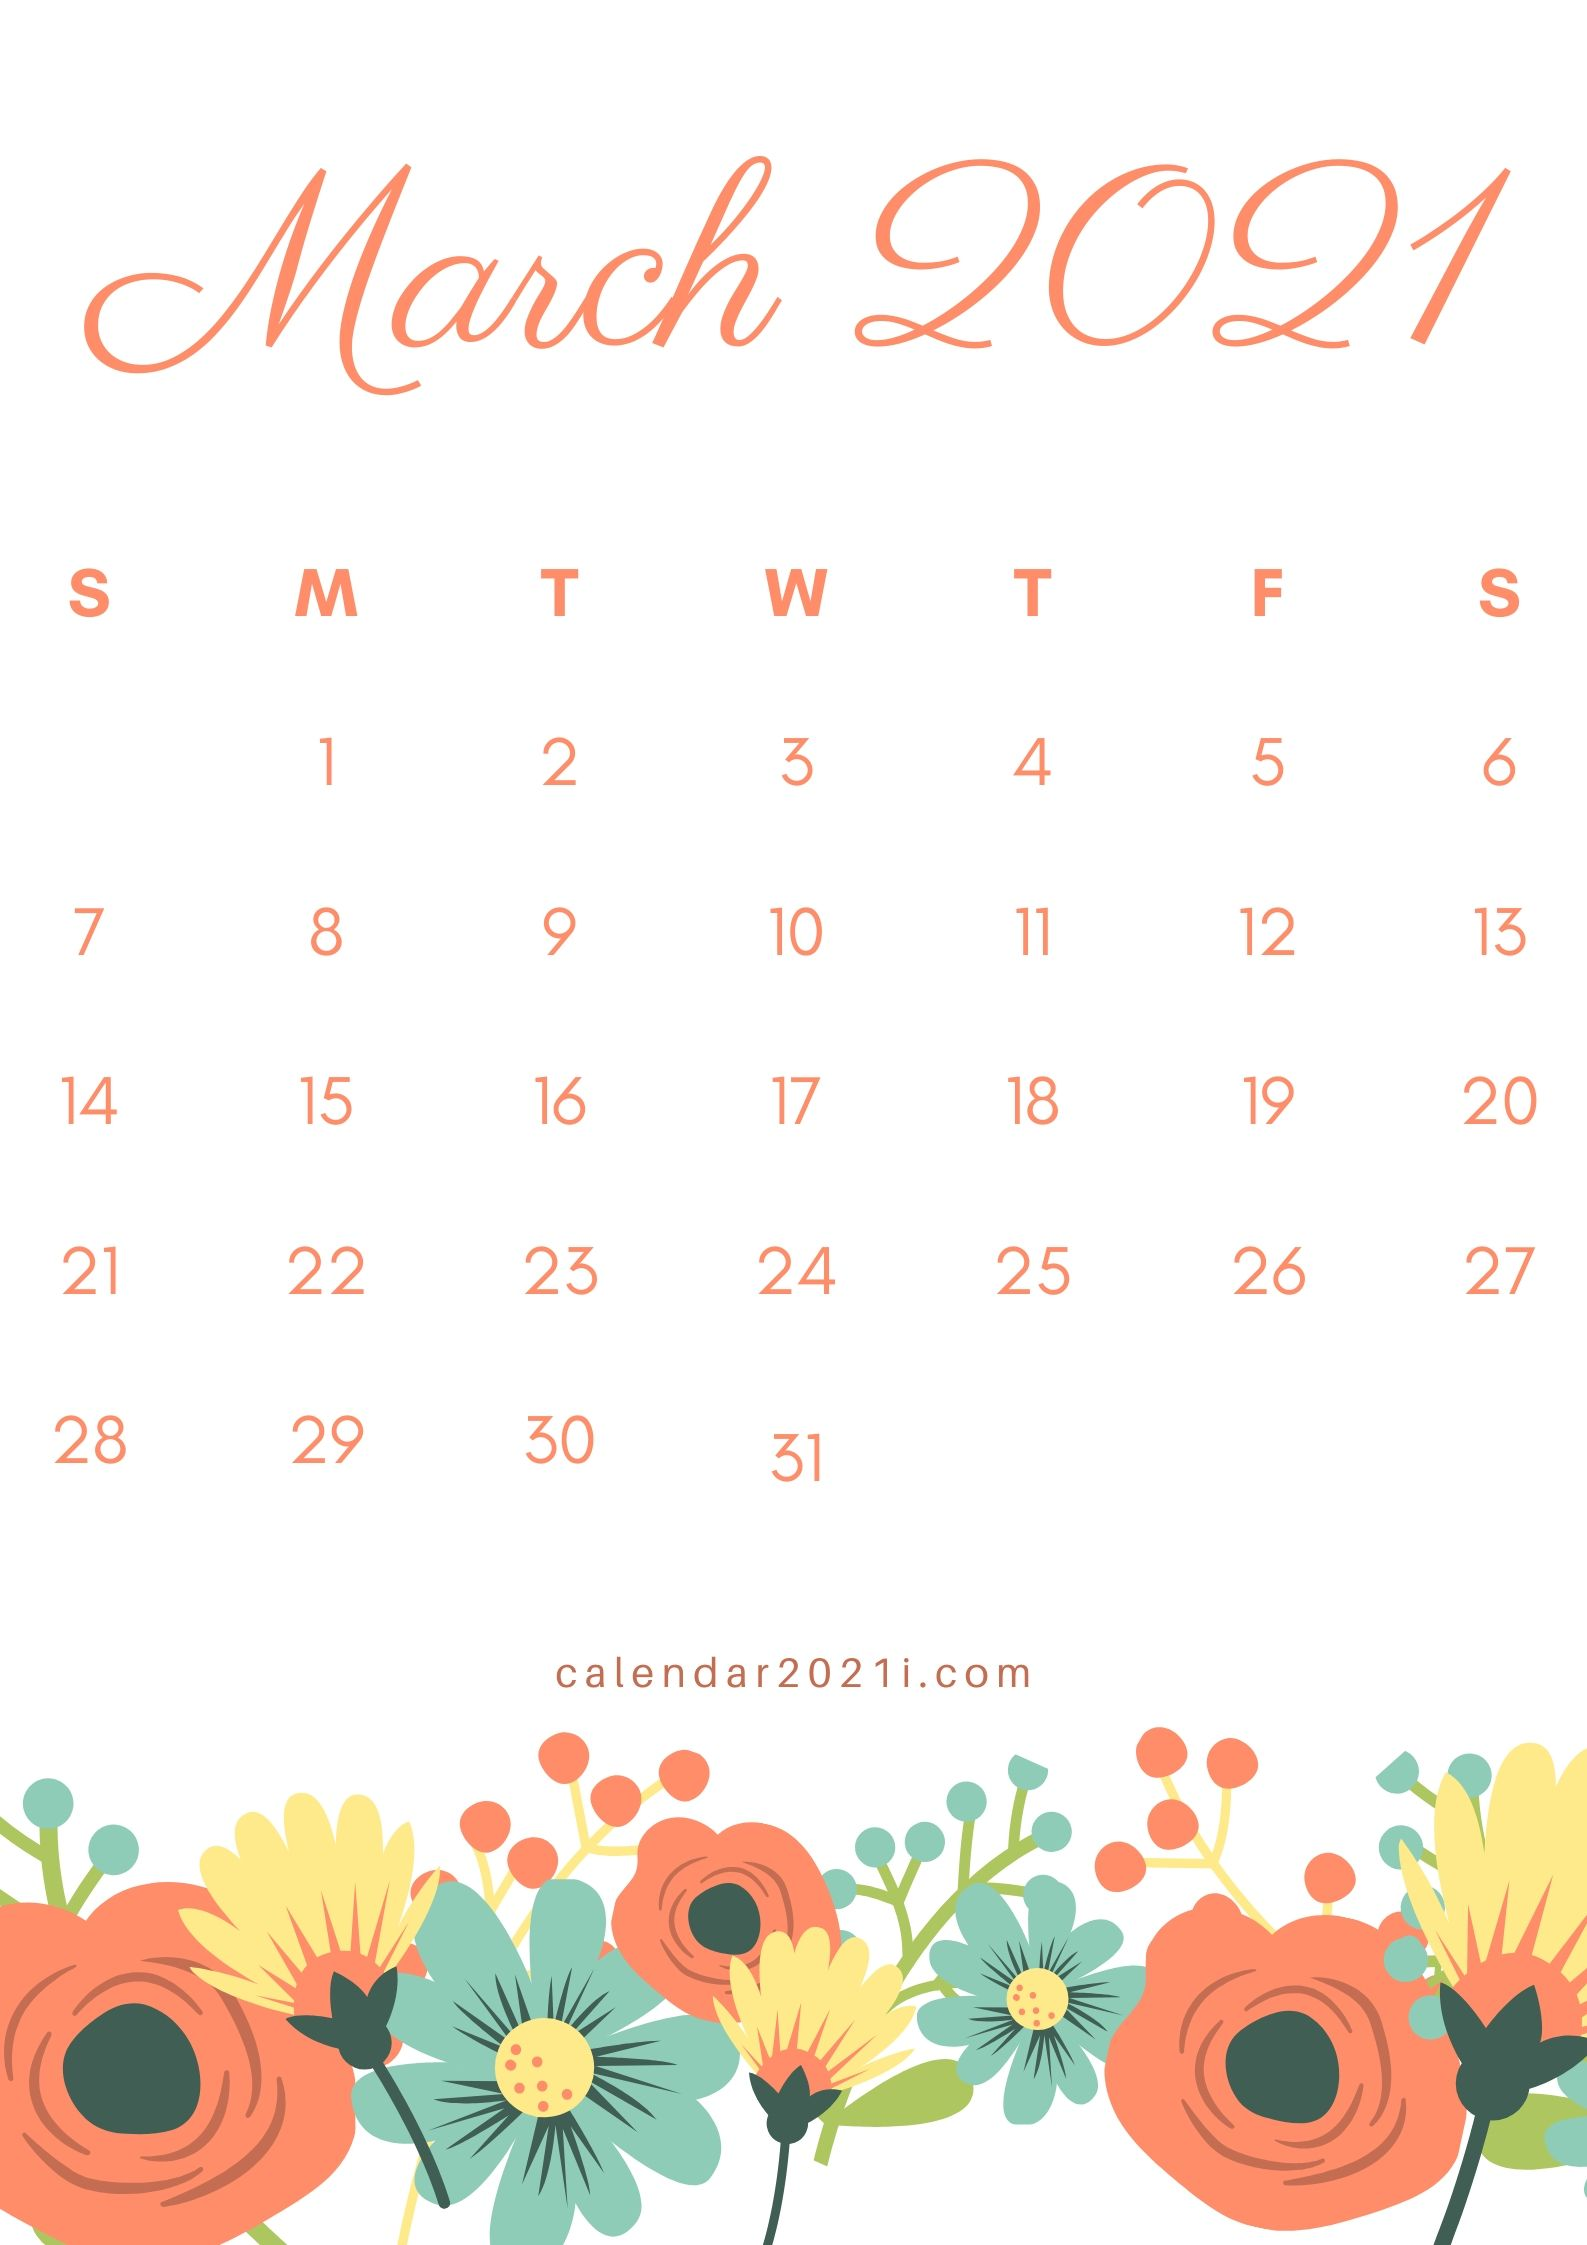 Floral March 2021 Calendar Printable Download Calendar 2021